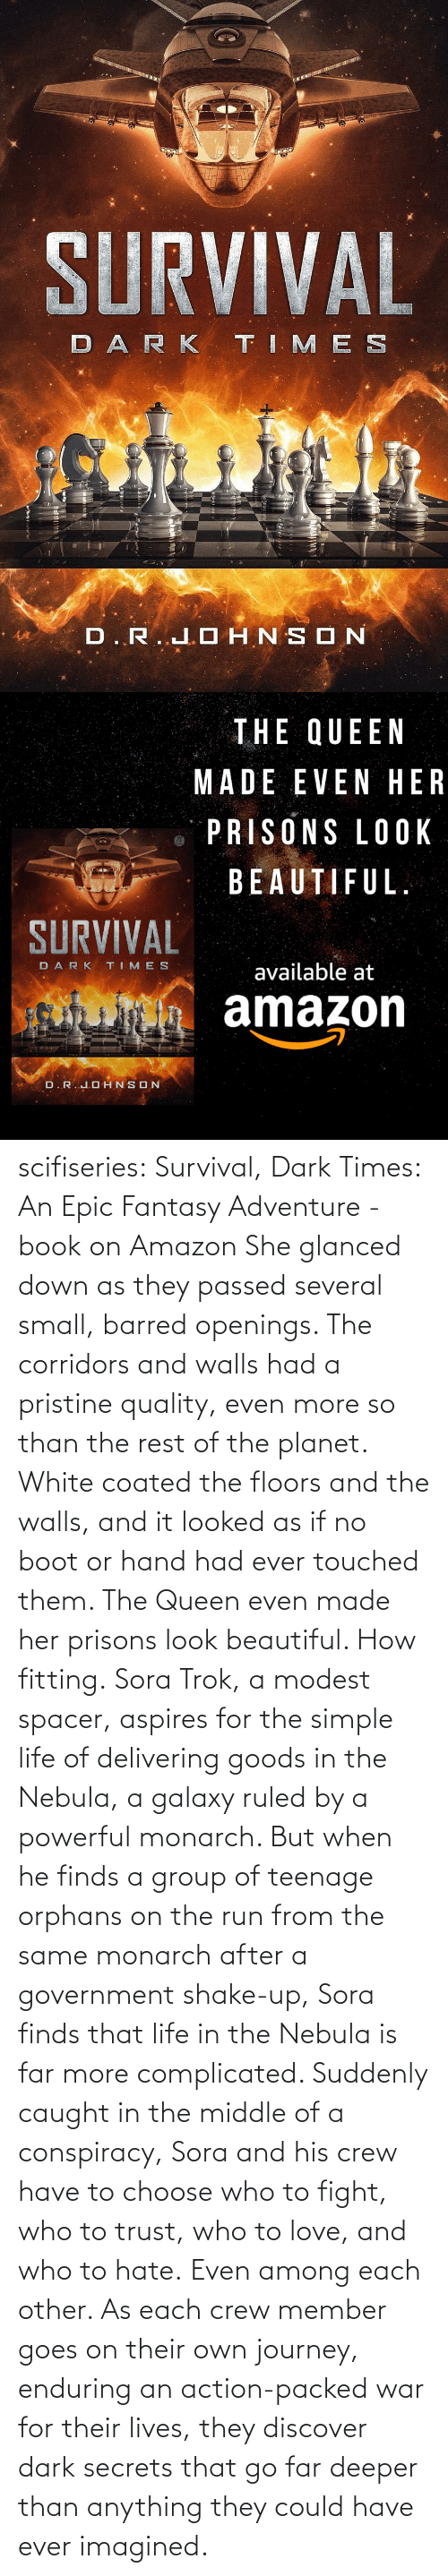 Fight: scifiseries: Survival, Dark Times: An Epic Fantasy Adventure - book on Amazon  She glanced down as they  passed several small, barred openings. The corridors and walls had a  pristine quality, even more so than the rest of the planet. White coated  the floors and the walls, and it looked as if no boot or hand had ever  touched them.  The Queen even made her prisons look beautiful.  How fitting. Sora  Trok, a modest spacer, aspires for the simple life of delivering goods  in the Nebula, a galaxy ruled by a powerful monarch. But when he finds a  group of teenage orphans on the run from the same monarch after a  government shake-up, Sora finds that life in the Nebula is far more complicated.  Suddenly  caught in the middle of a conspiracy, Sora and his crew have to choose  who to fight, who to trust, who to love, and who to hate. Even among each other.  As  each crew member goes on their own journey, enduring an action-packed  war for their lives, they discover dark secrets that go far deeper than  anything they could have ever imagined.